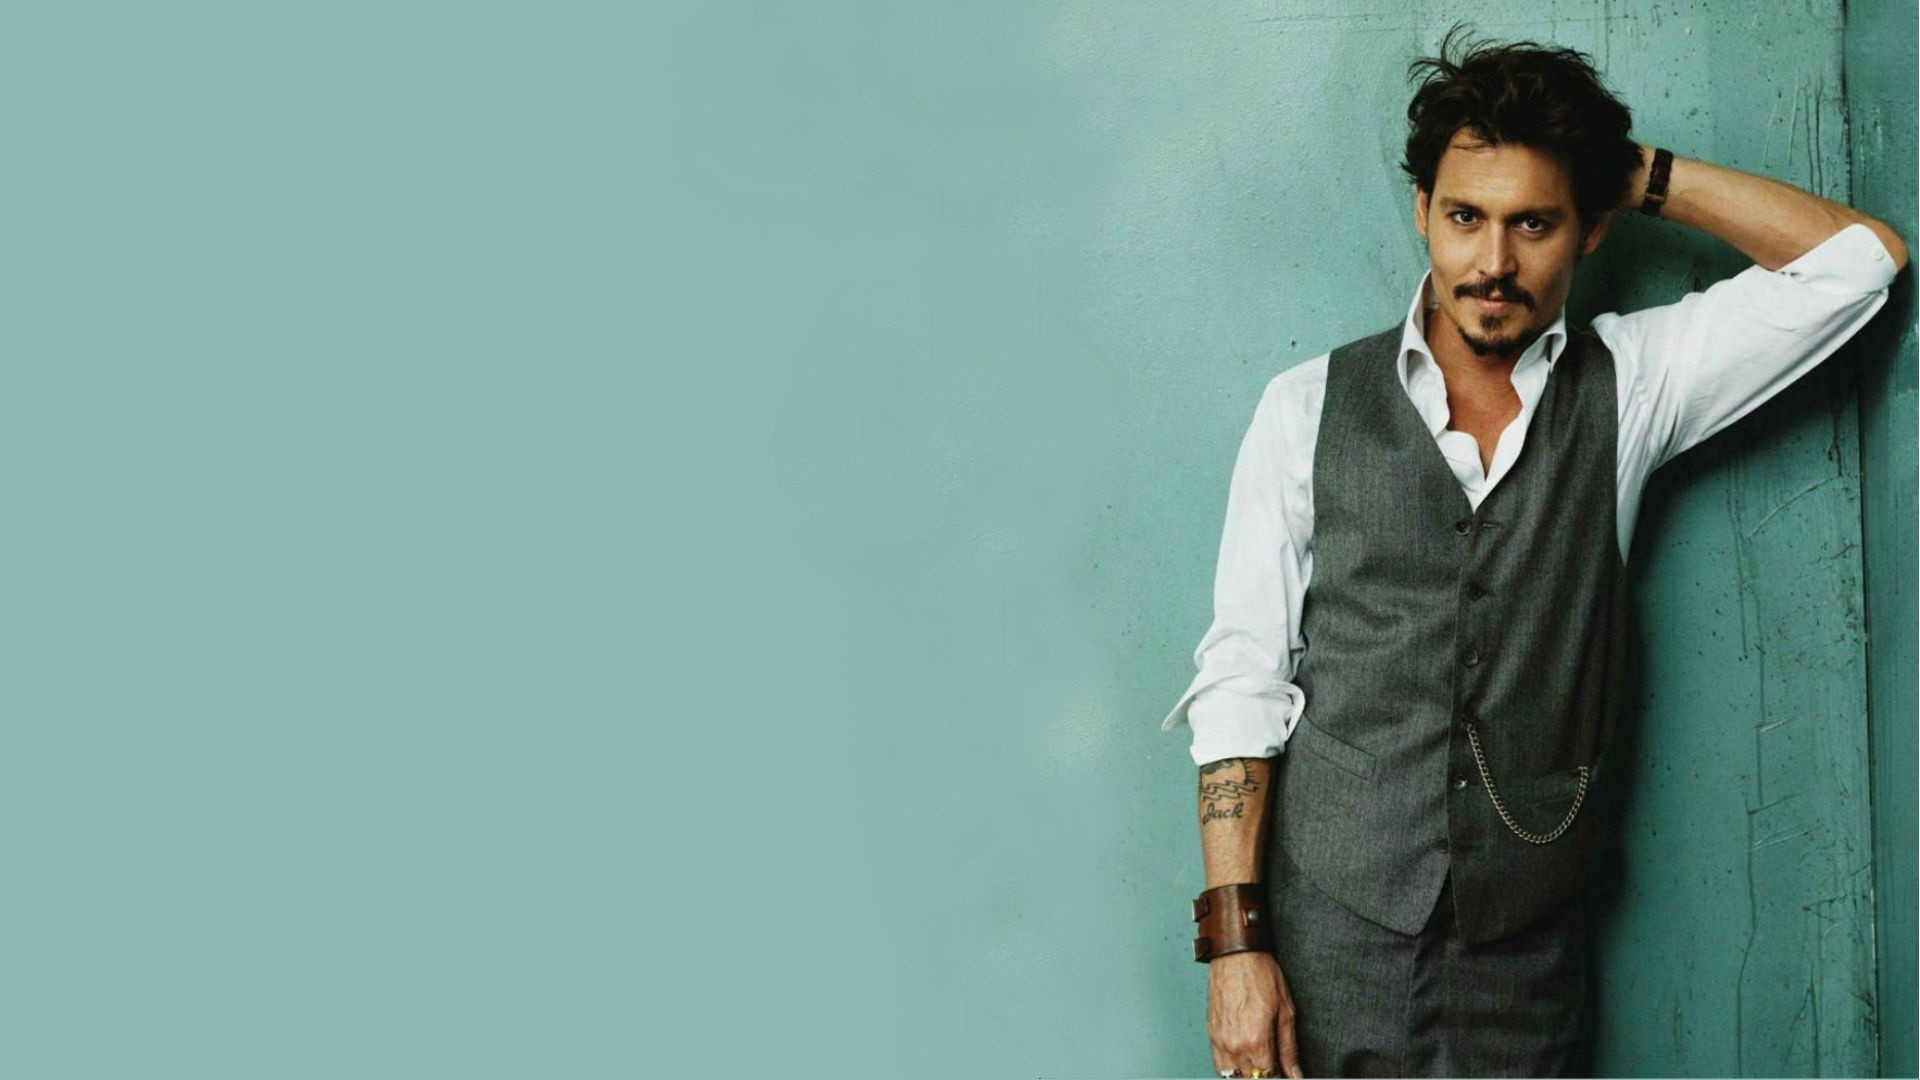 Johnny Depp Backgrounds ①